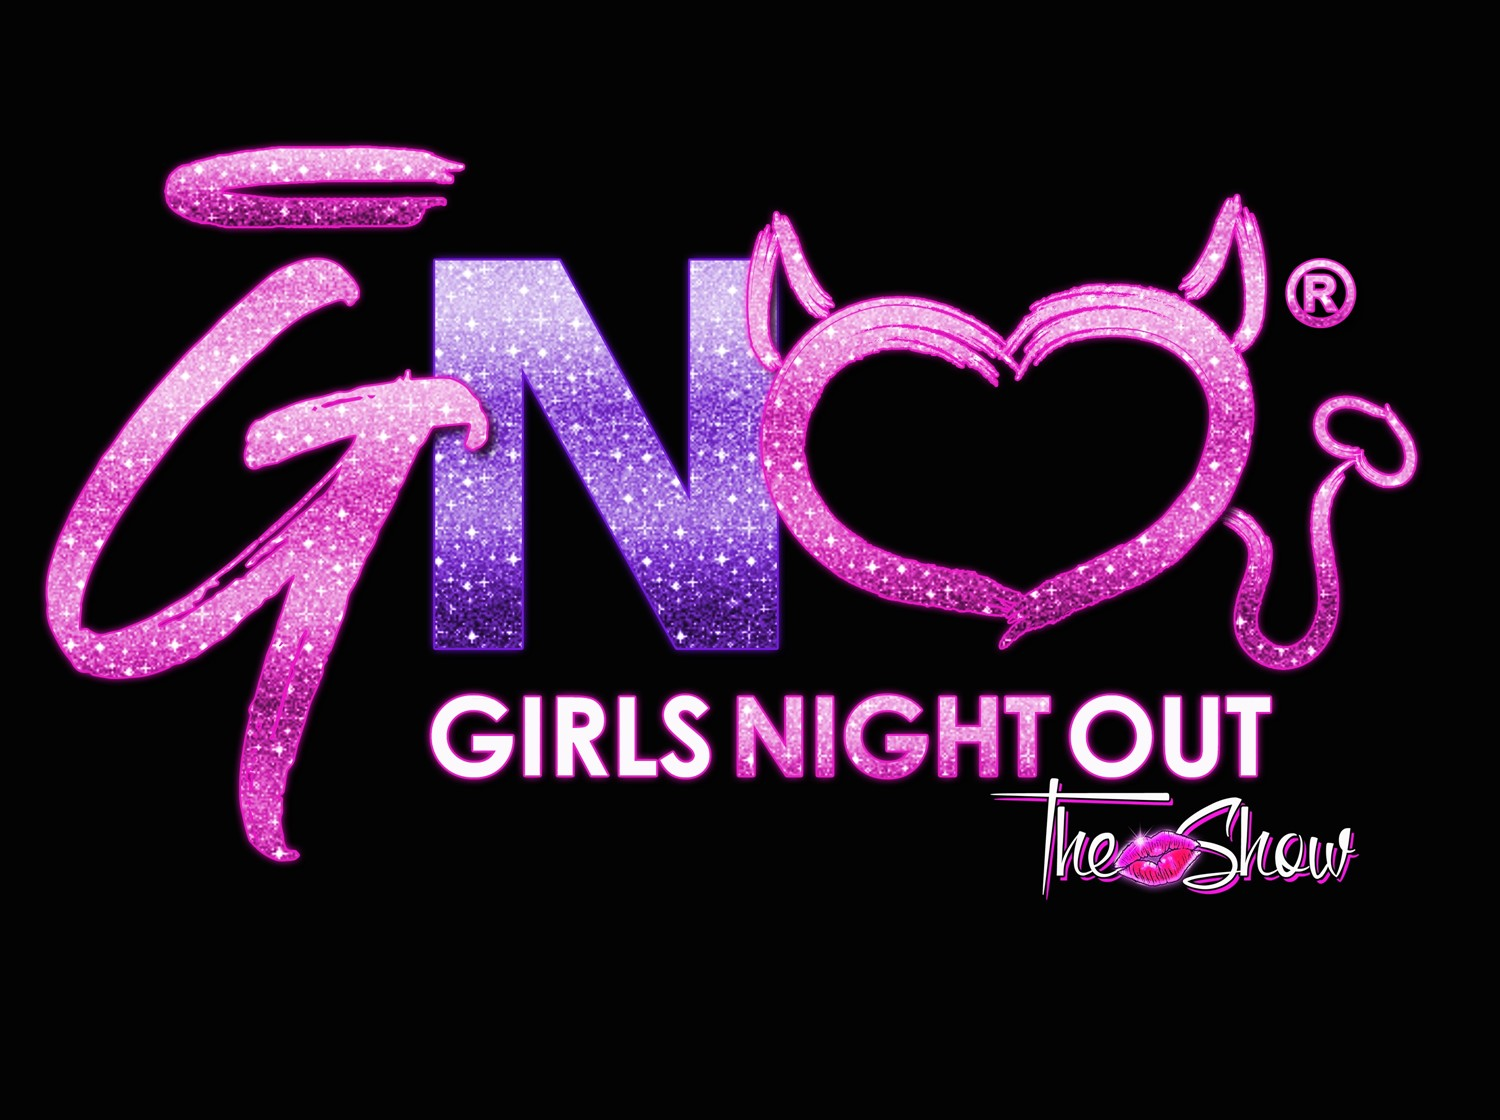 The Garage (21+) Tower City, PA on May 20, 20:00@The Garage - Buy tickets and Get information on Girls Night Out the Show tickets.girlsnightouttheshow.com